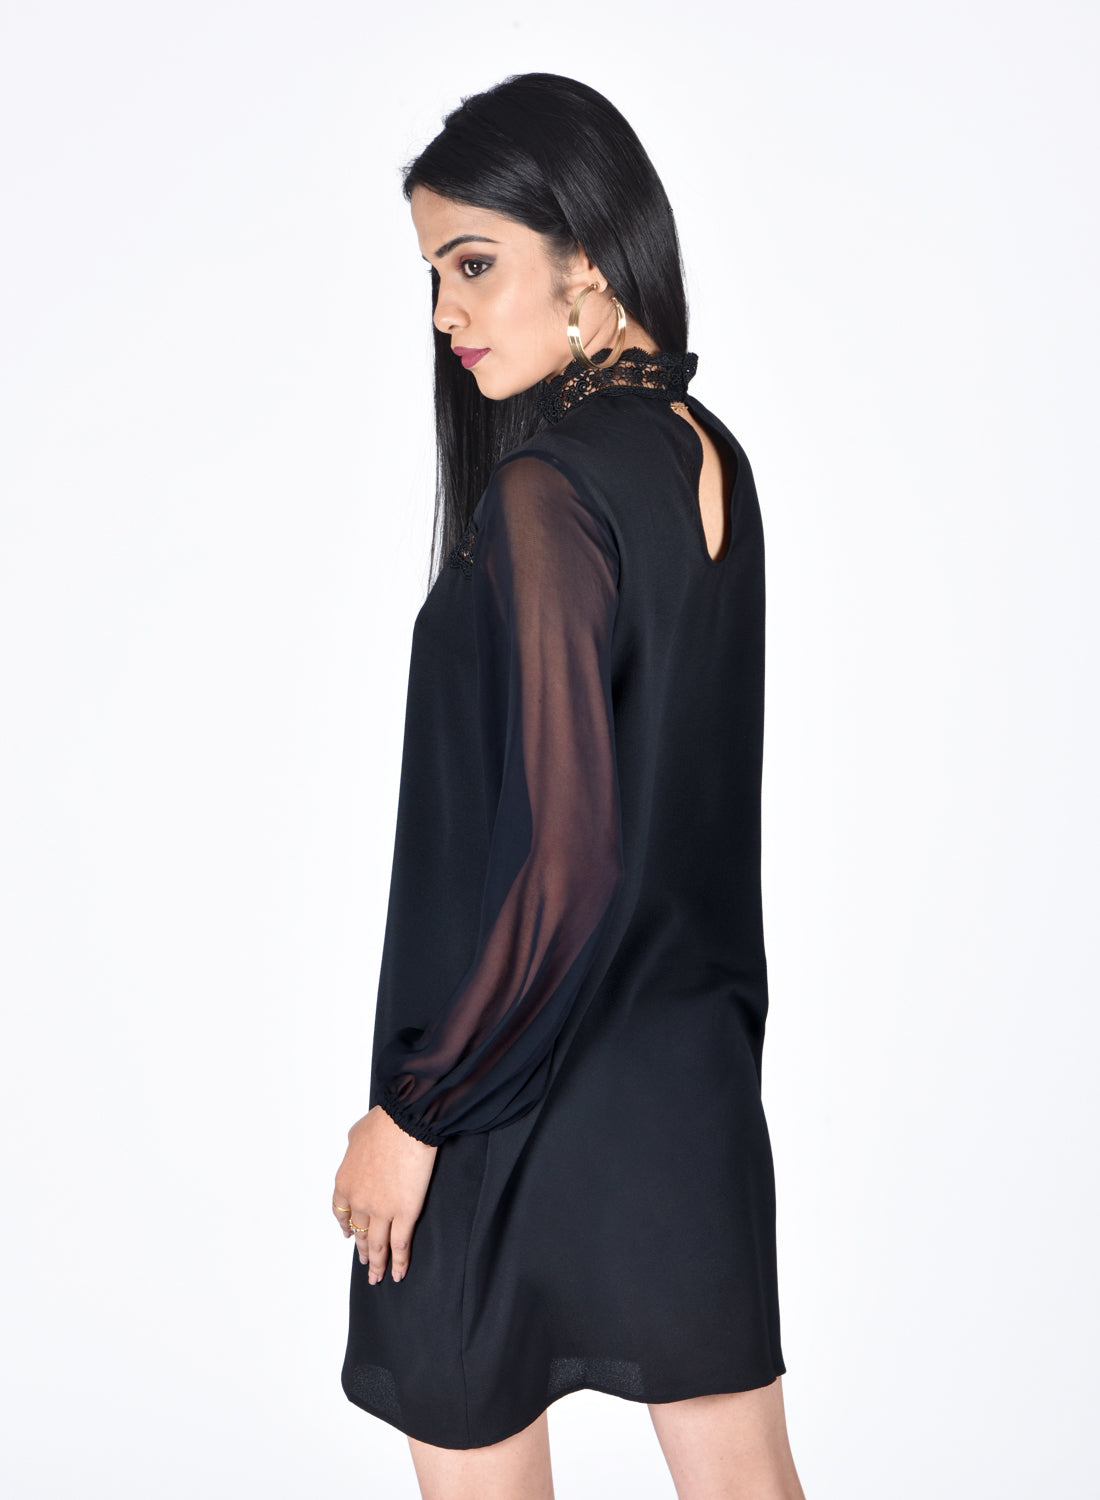 Relaxed Fit Black Dress